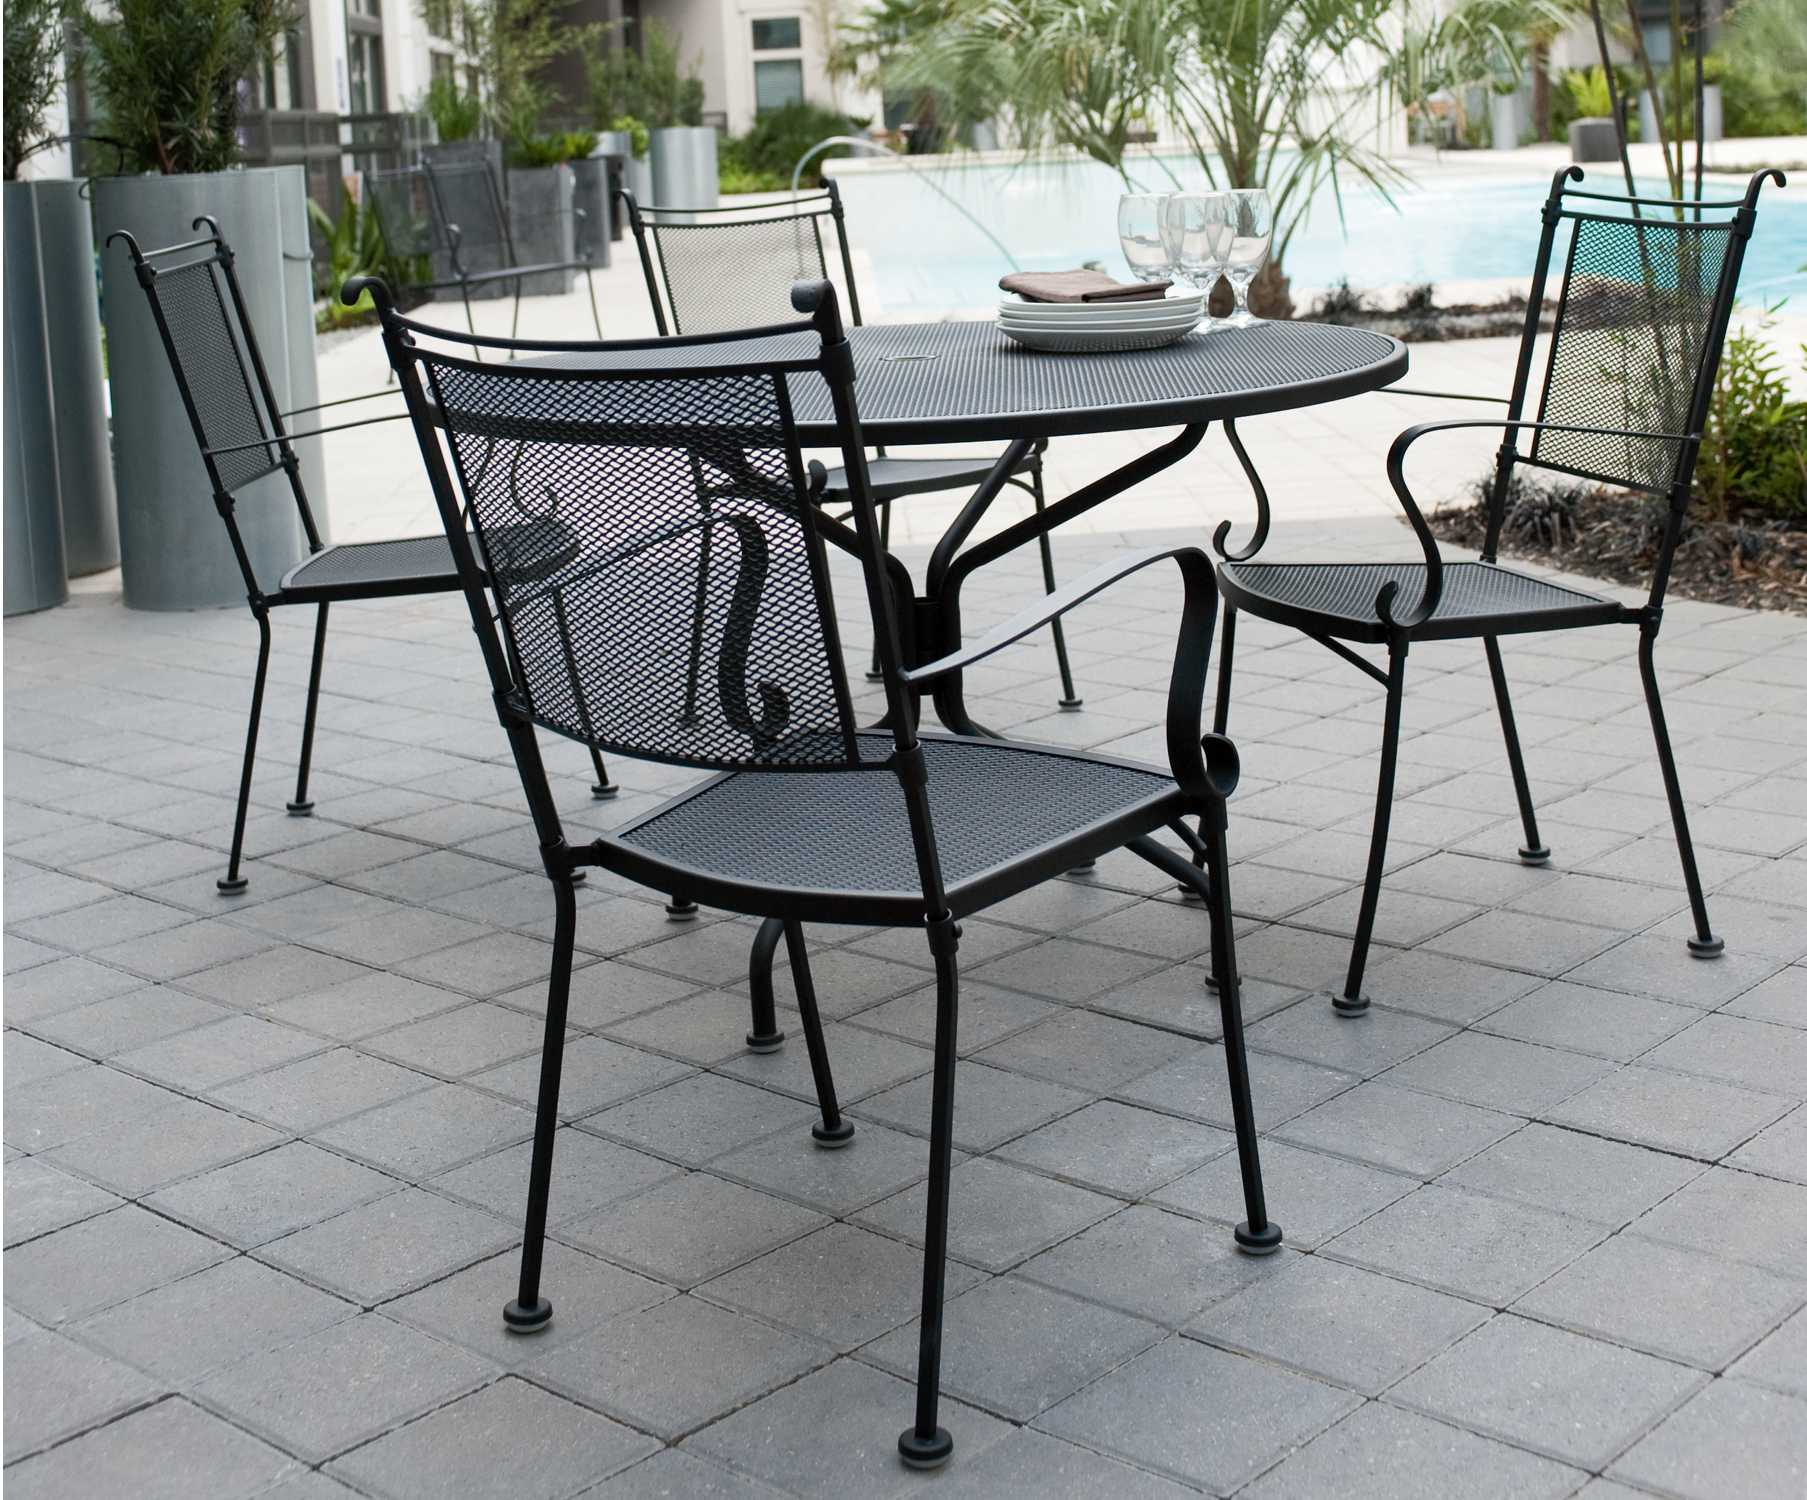 PatioFurnitureBuy Woodard Wrought Iron 42 Round Umbrella Table 4 Spoke